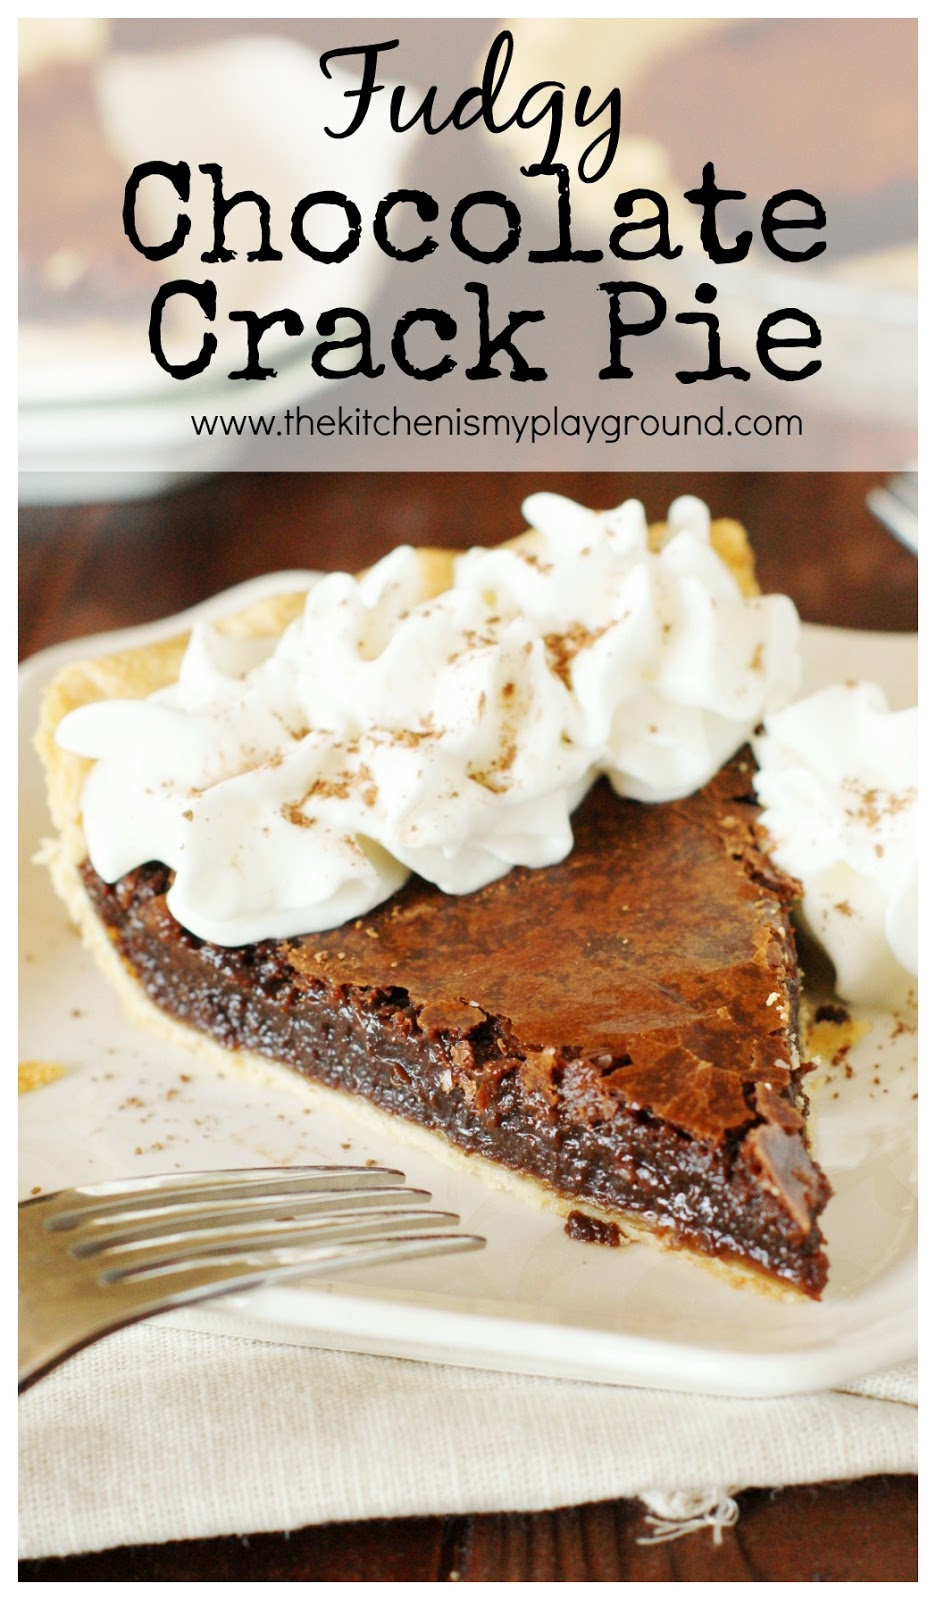 Chocolate Crack Pie - The Kitchen is My Playground